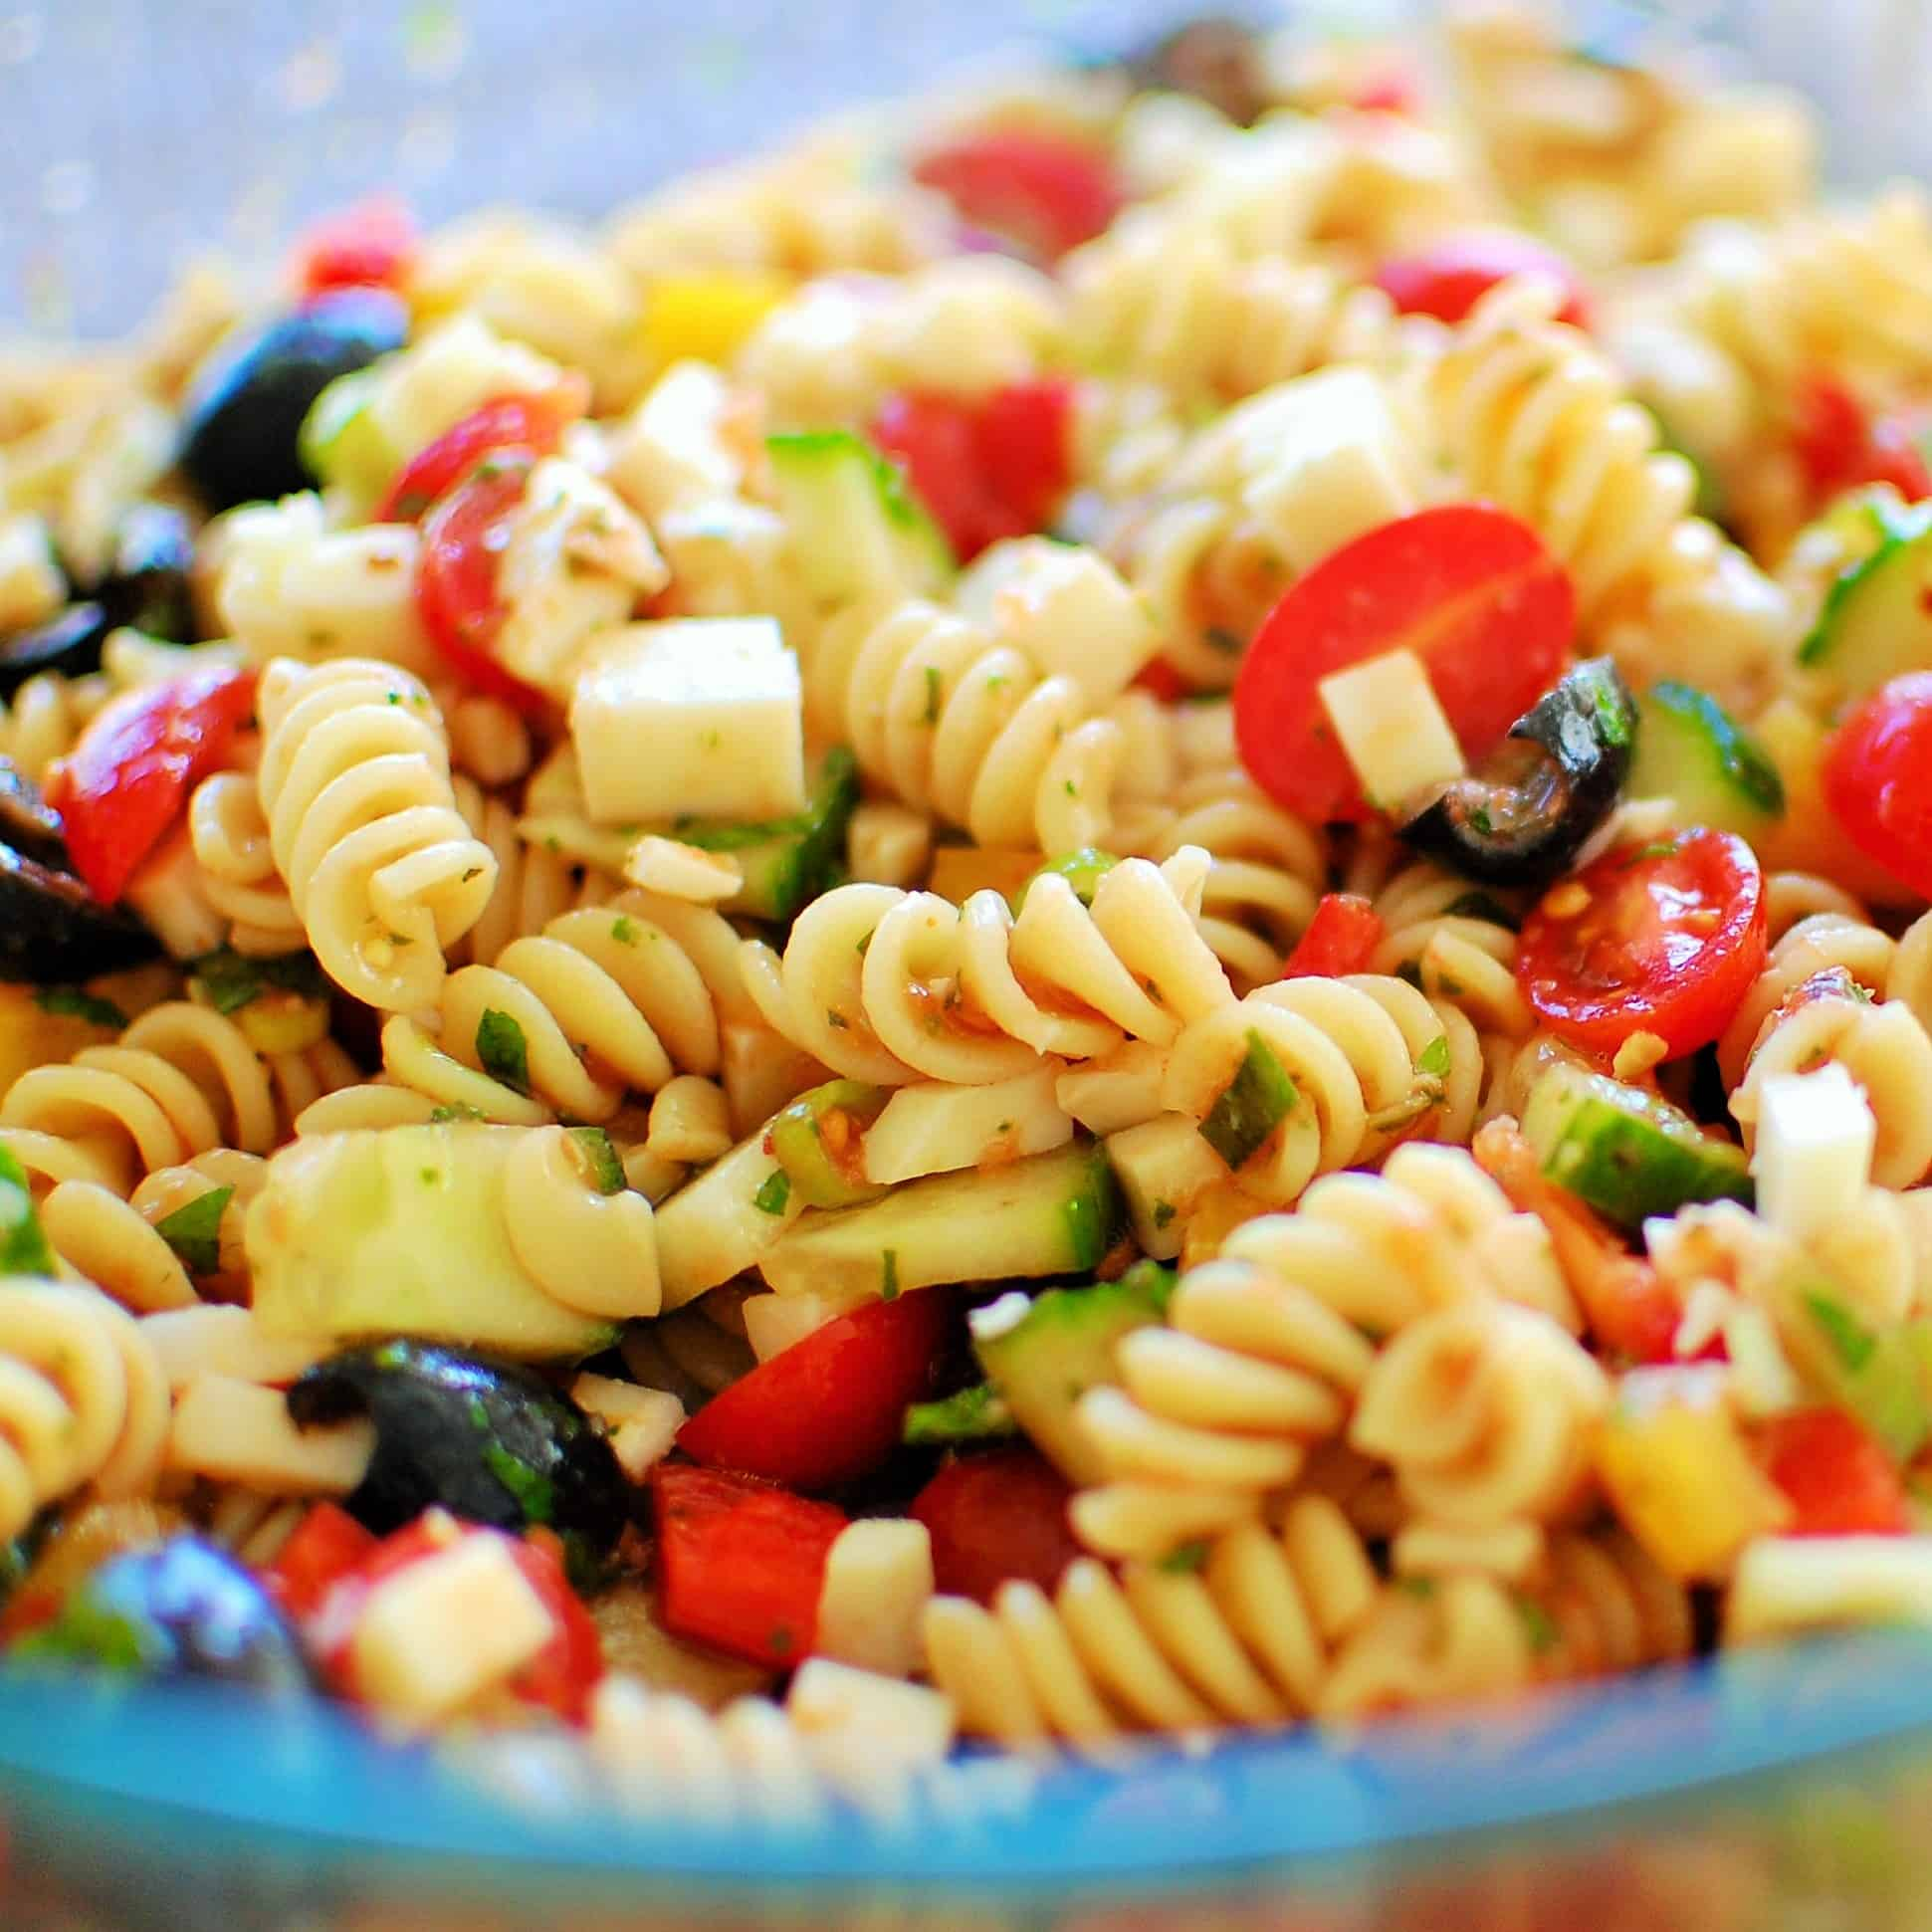 Cold Pasta Salad. A Great Tasting Salad Recipe Using Fresh Ingredients. |  Joeshealthymeals.